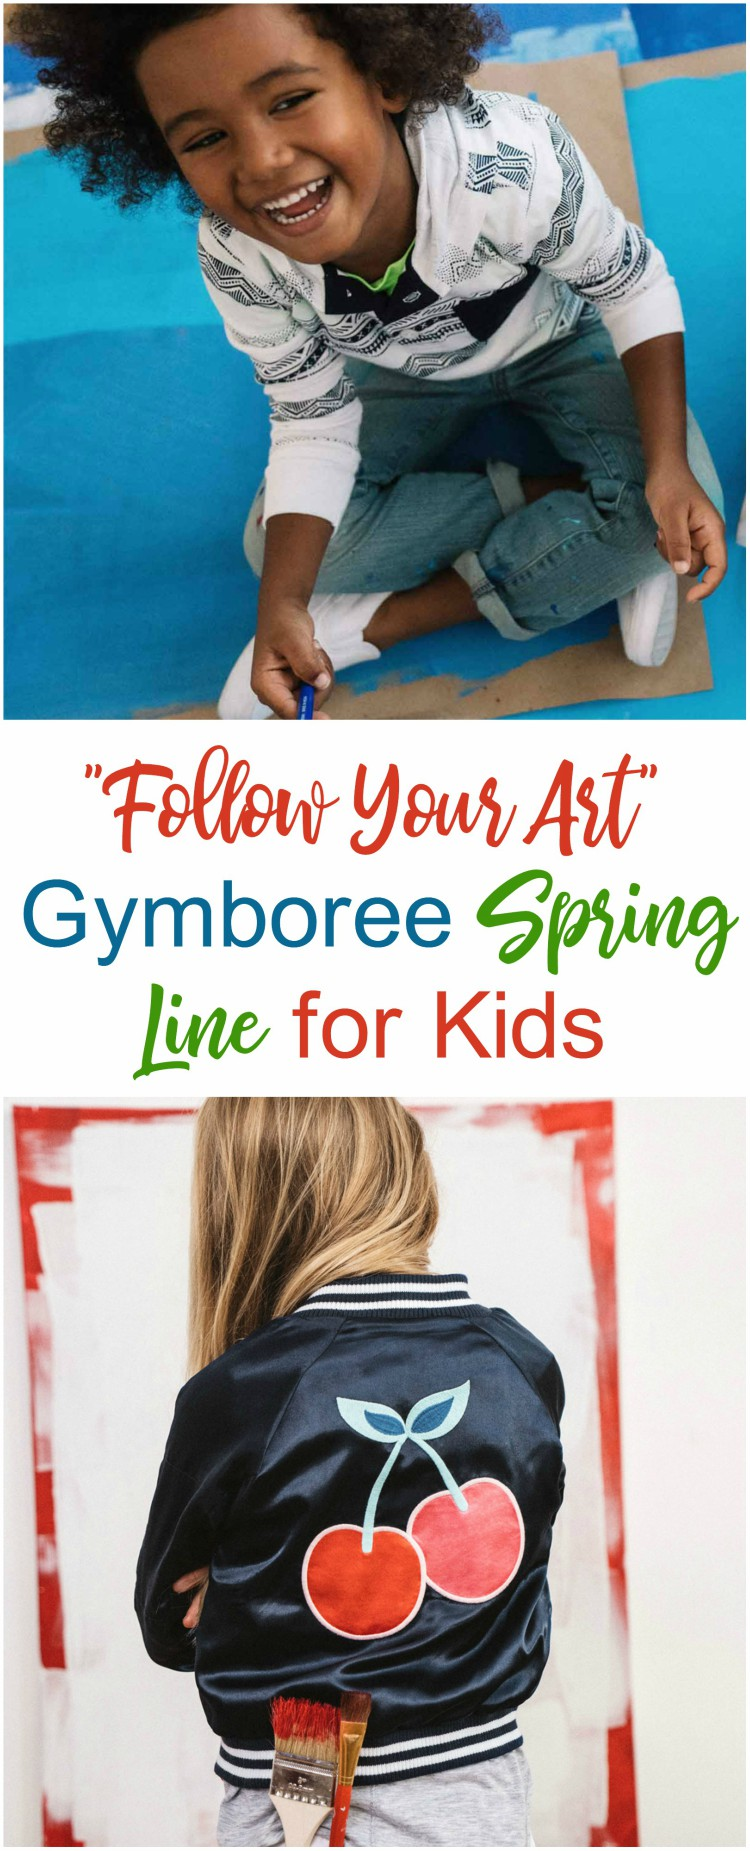 """Follow Your Art"" with Gymboree's Spring Line for Kids 